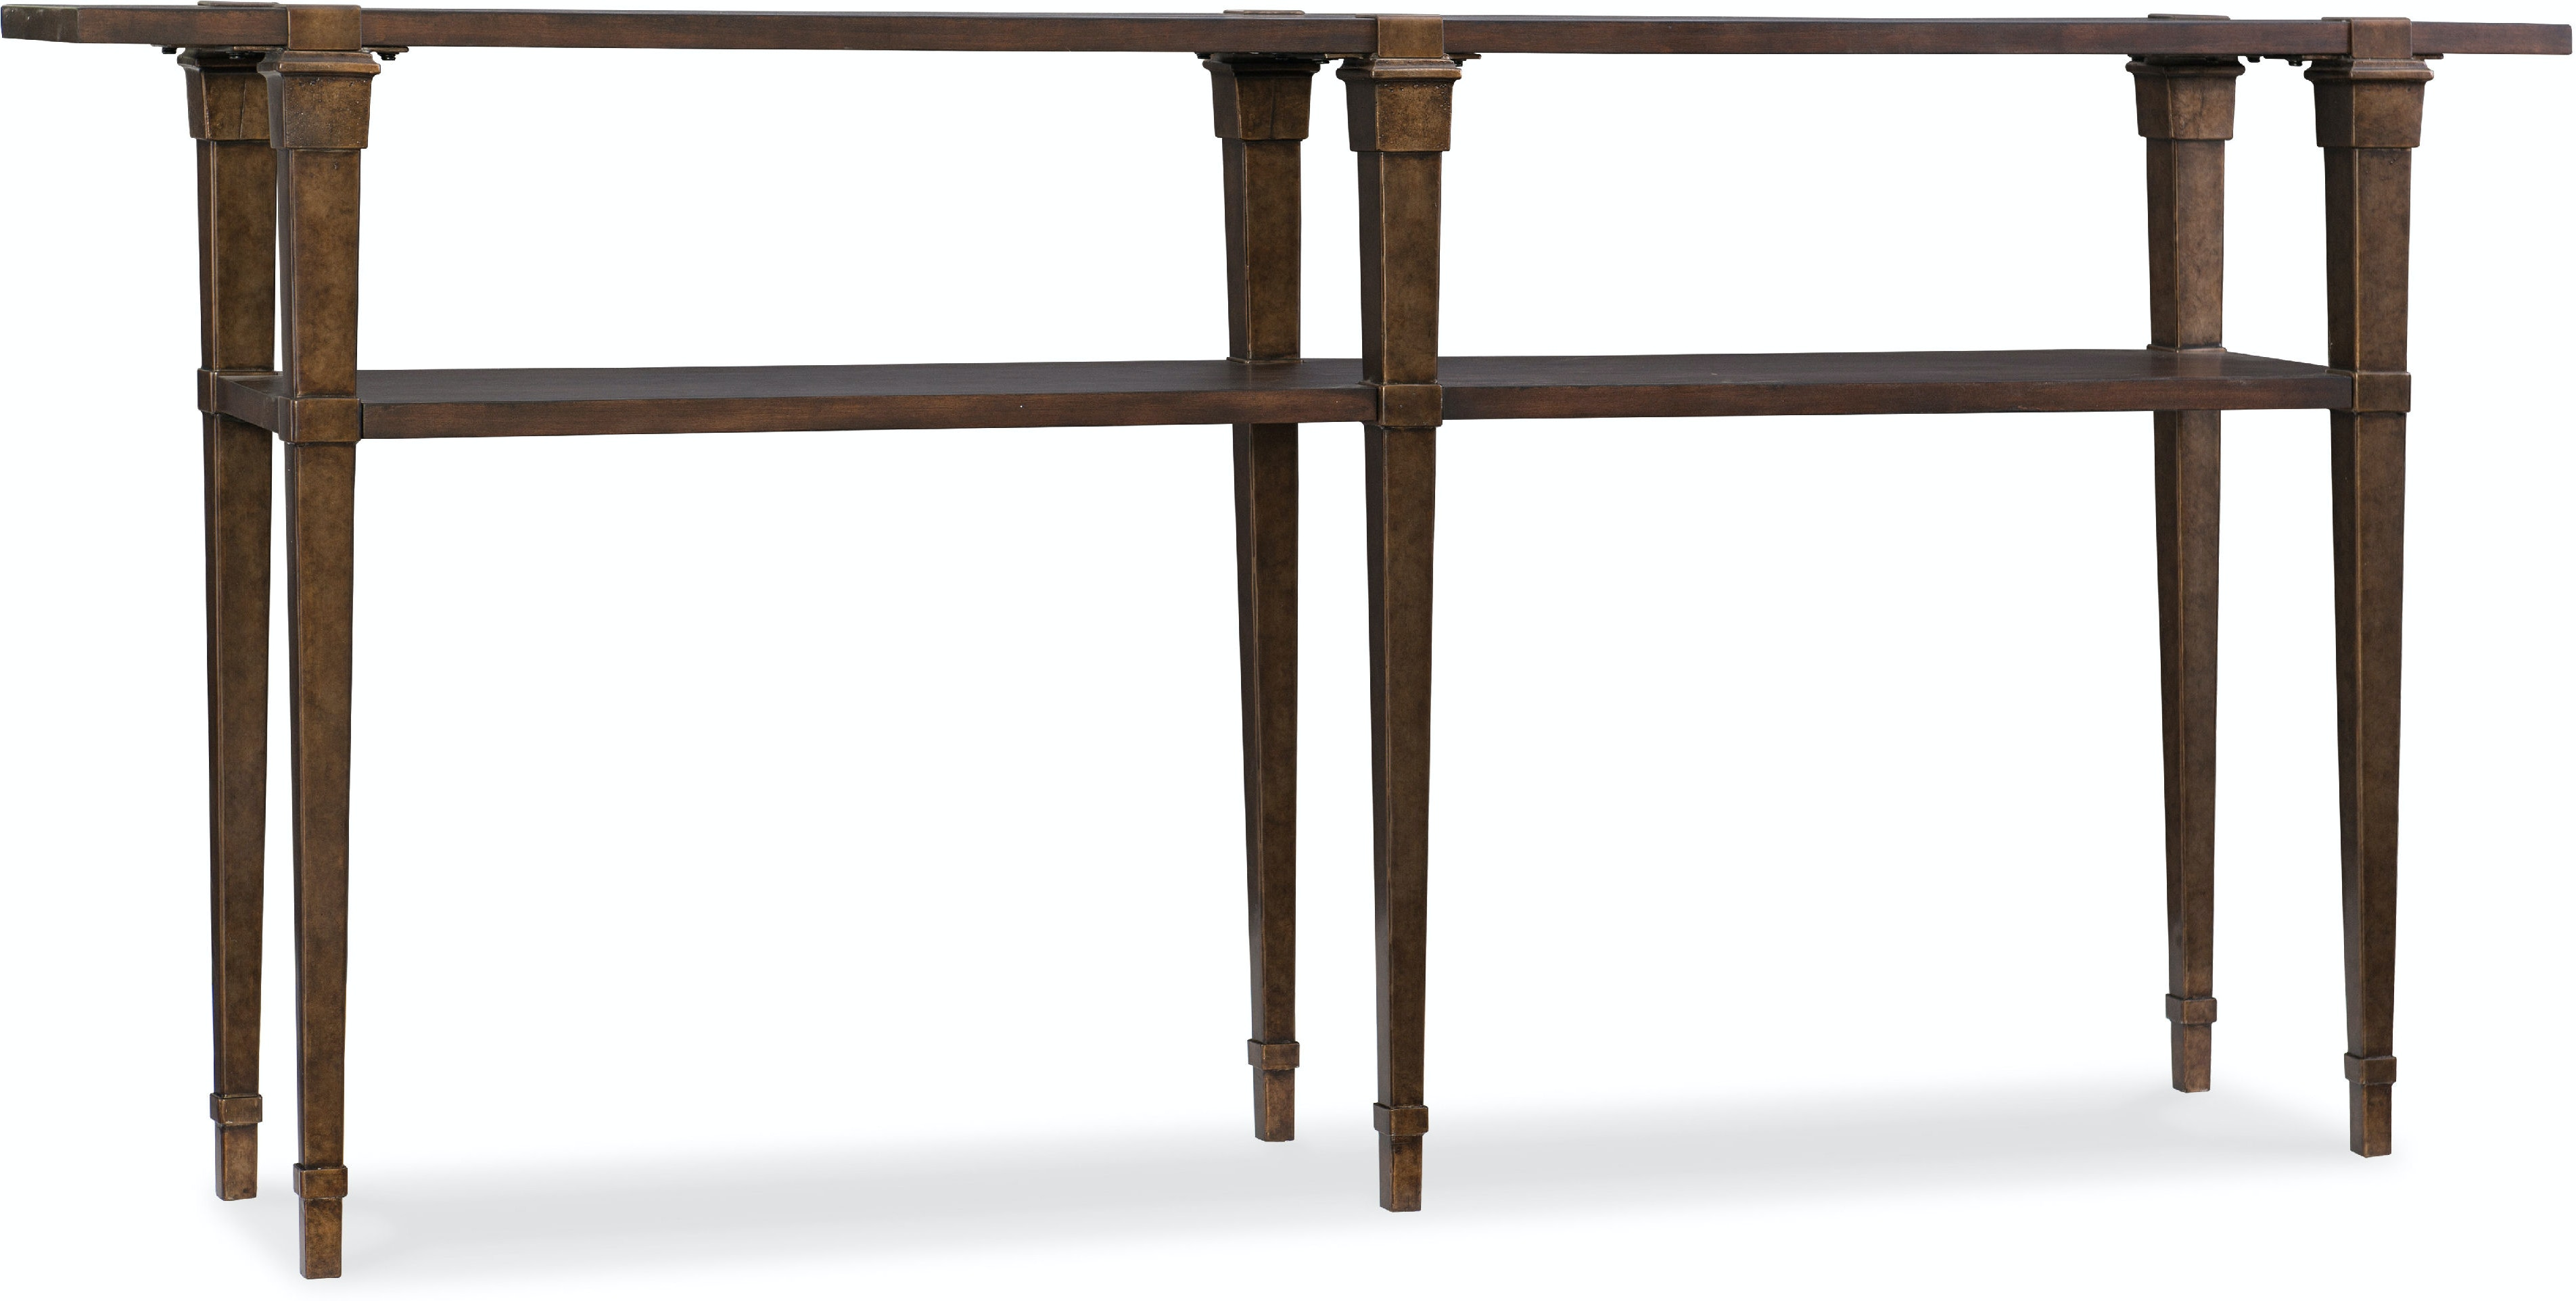 new concept aba67 cc926 Hooker Furniture Living Room Skinny Console Table 5589-85001-DKW